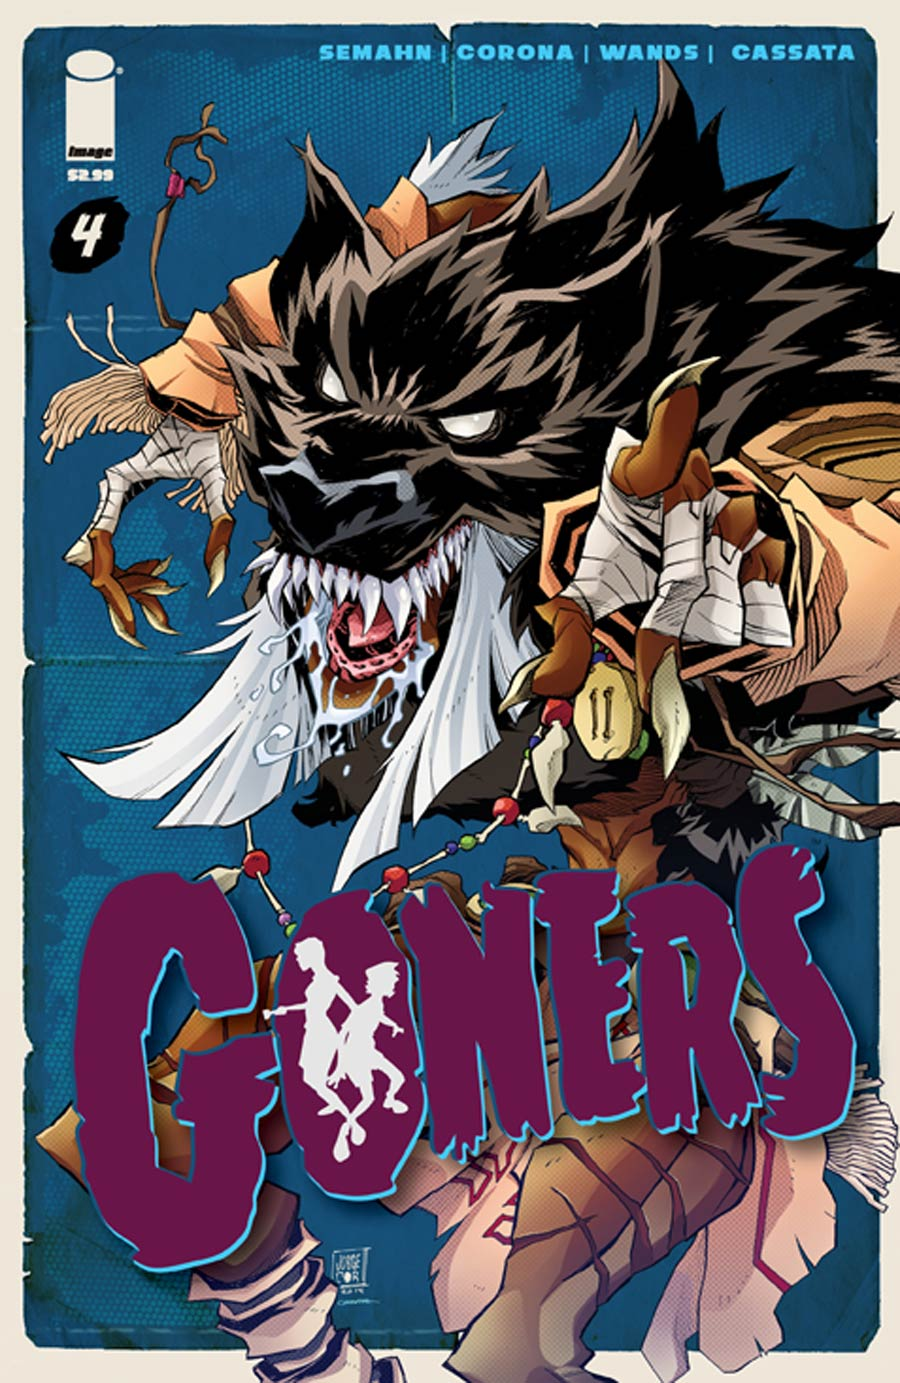 Goners #4